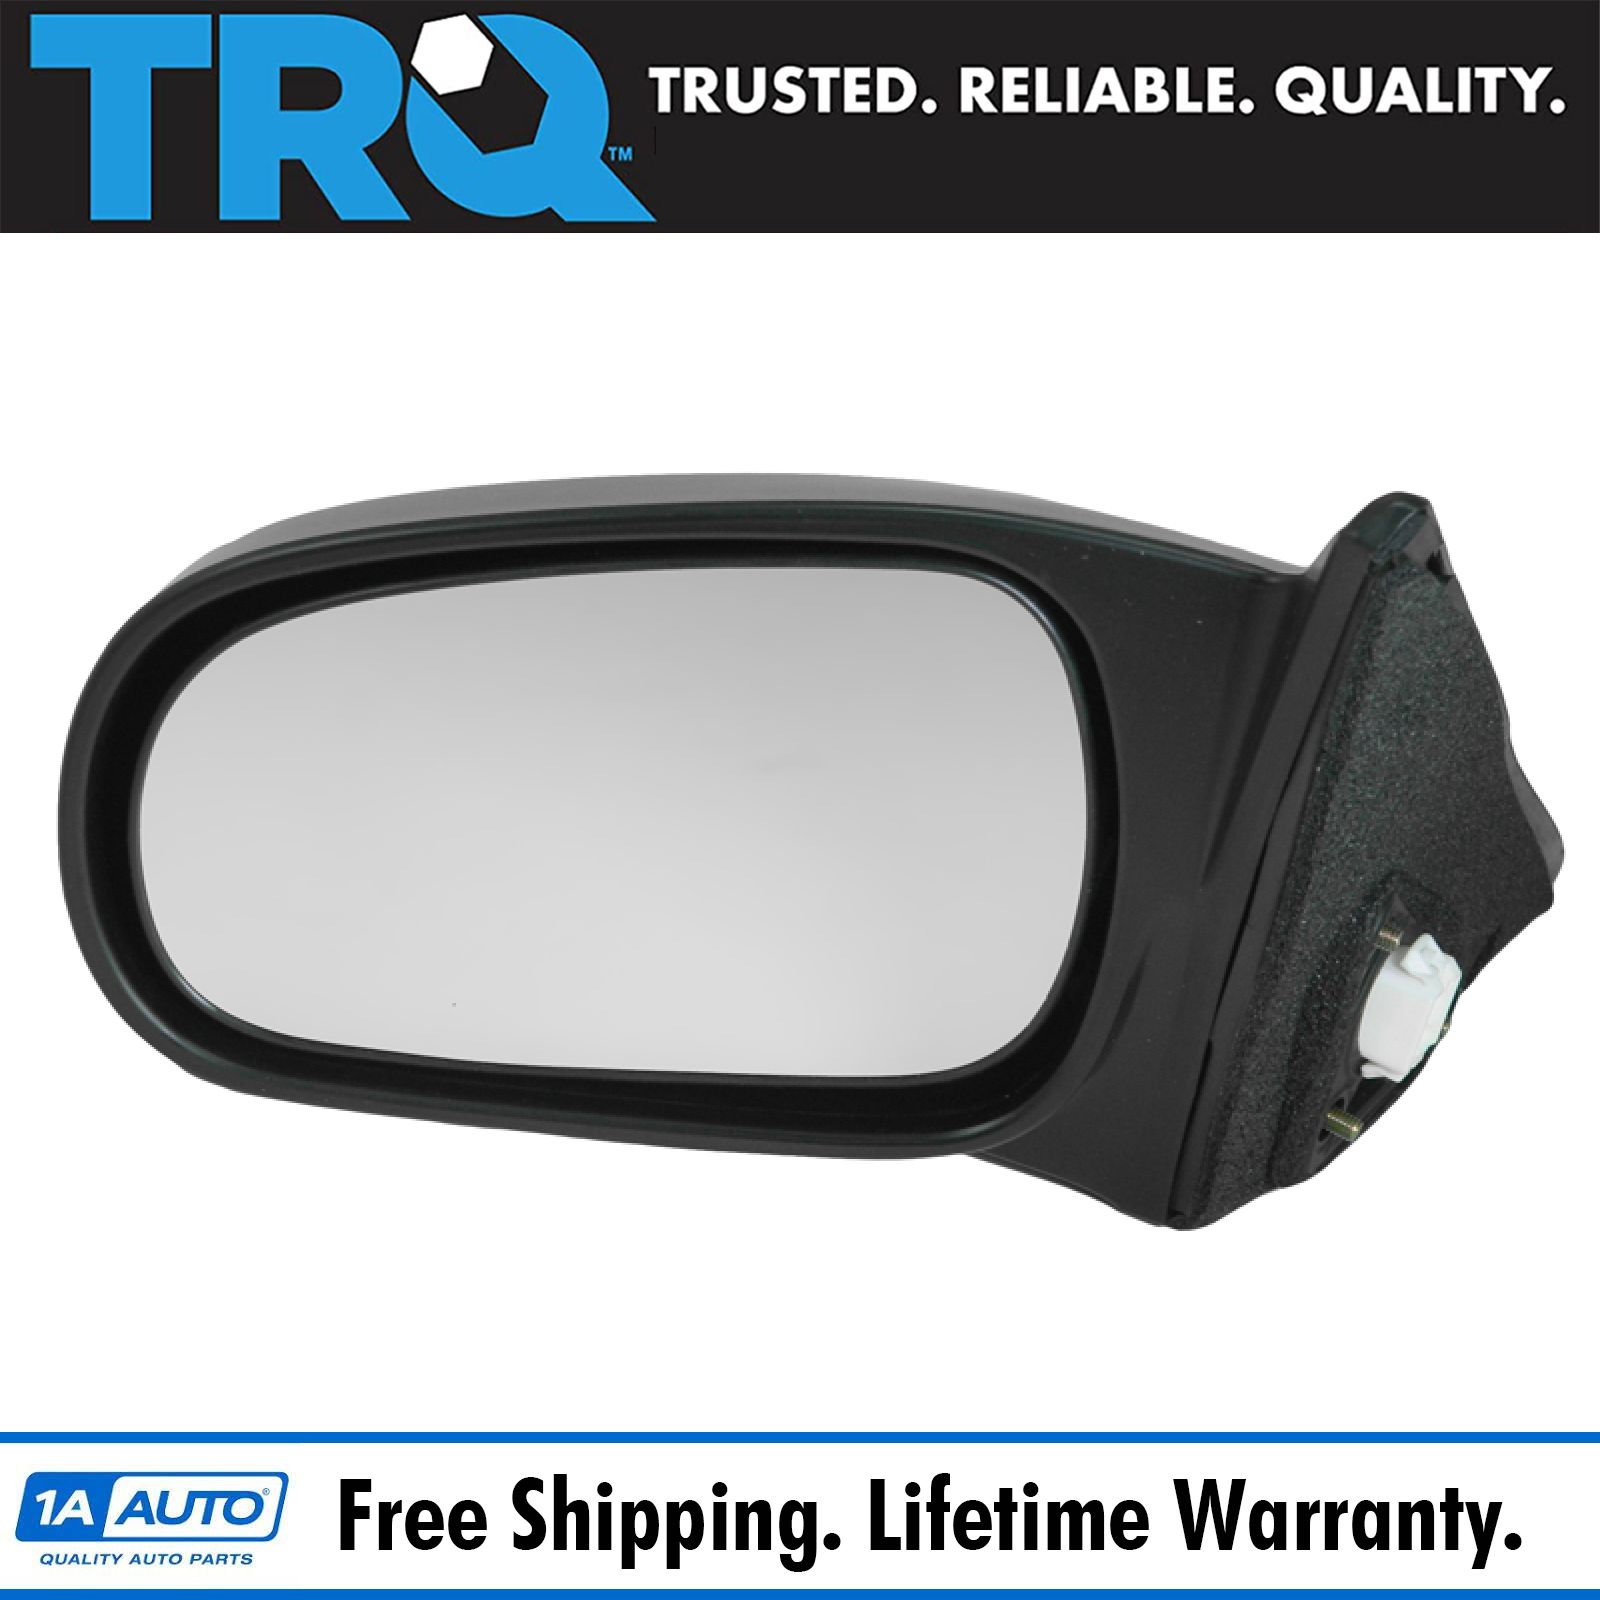 96-00 Civic 2-Door Coupe Power Non-Folding Rear View Mirror Left Driver Side NEW